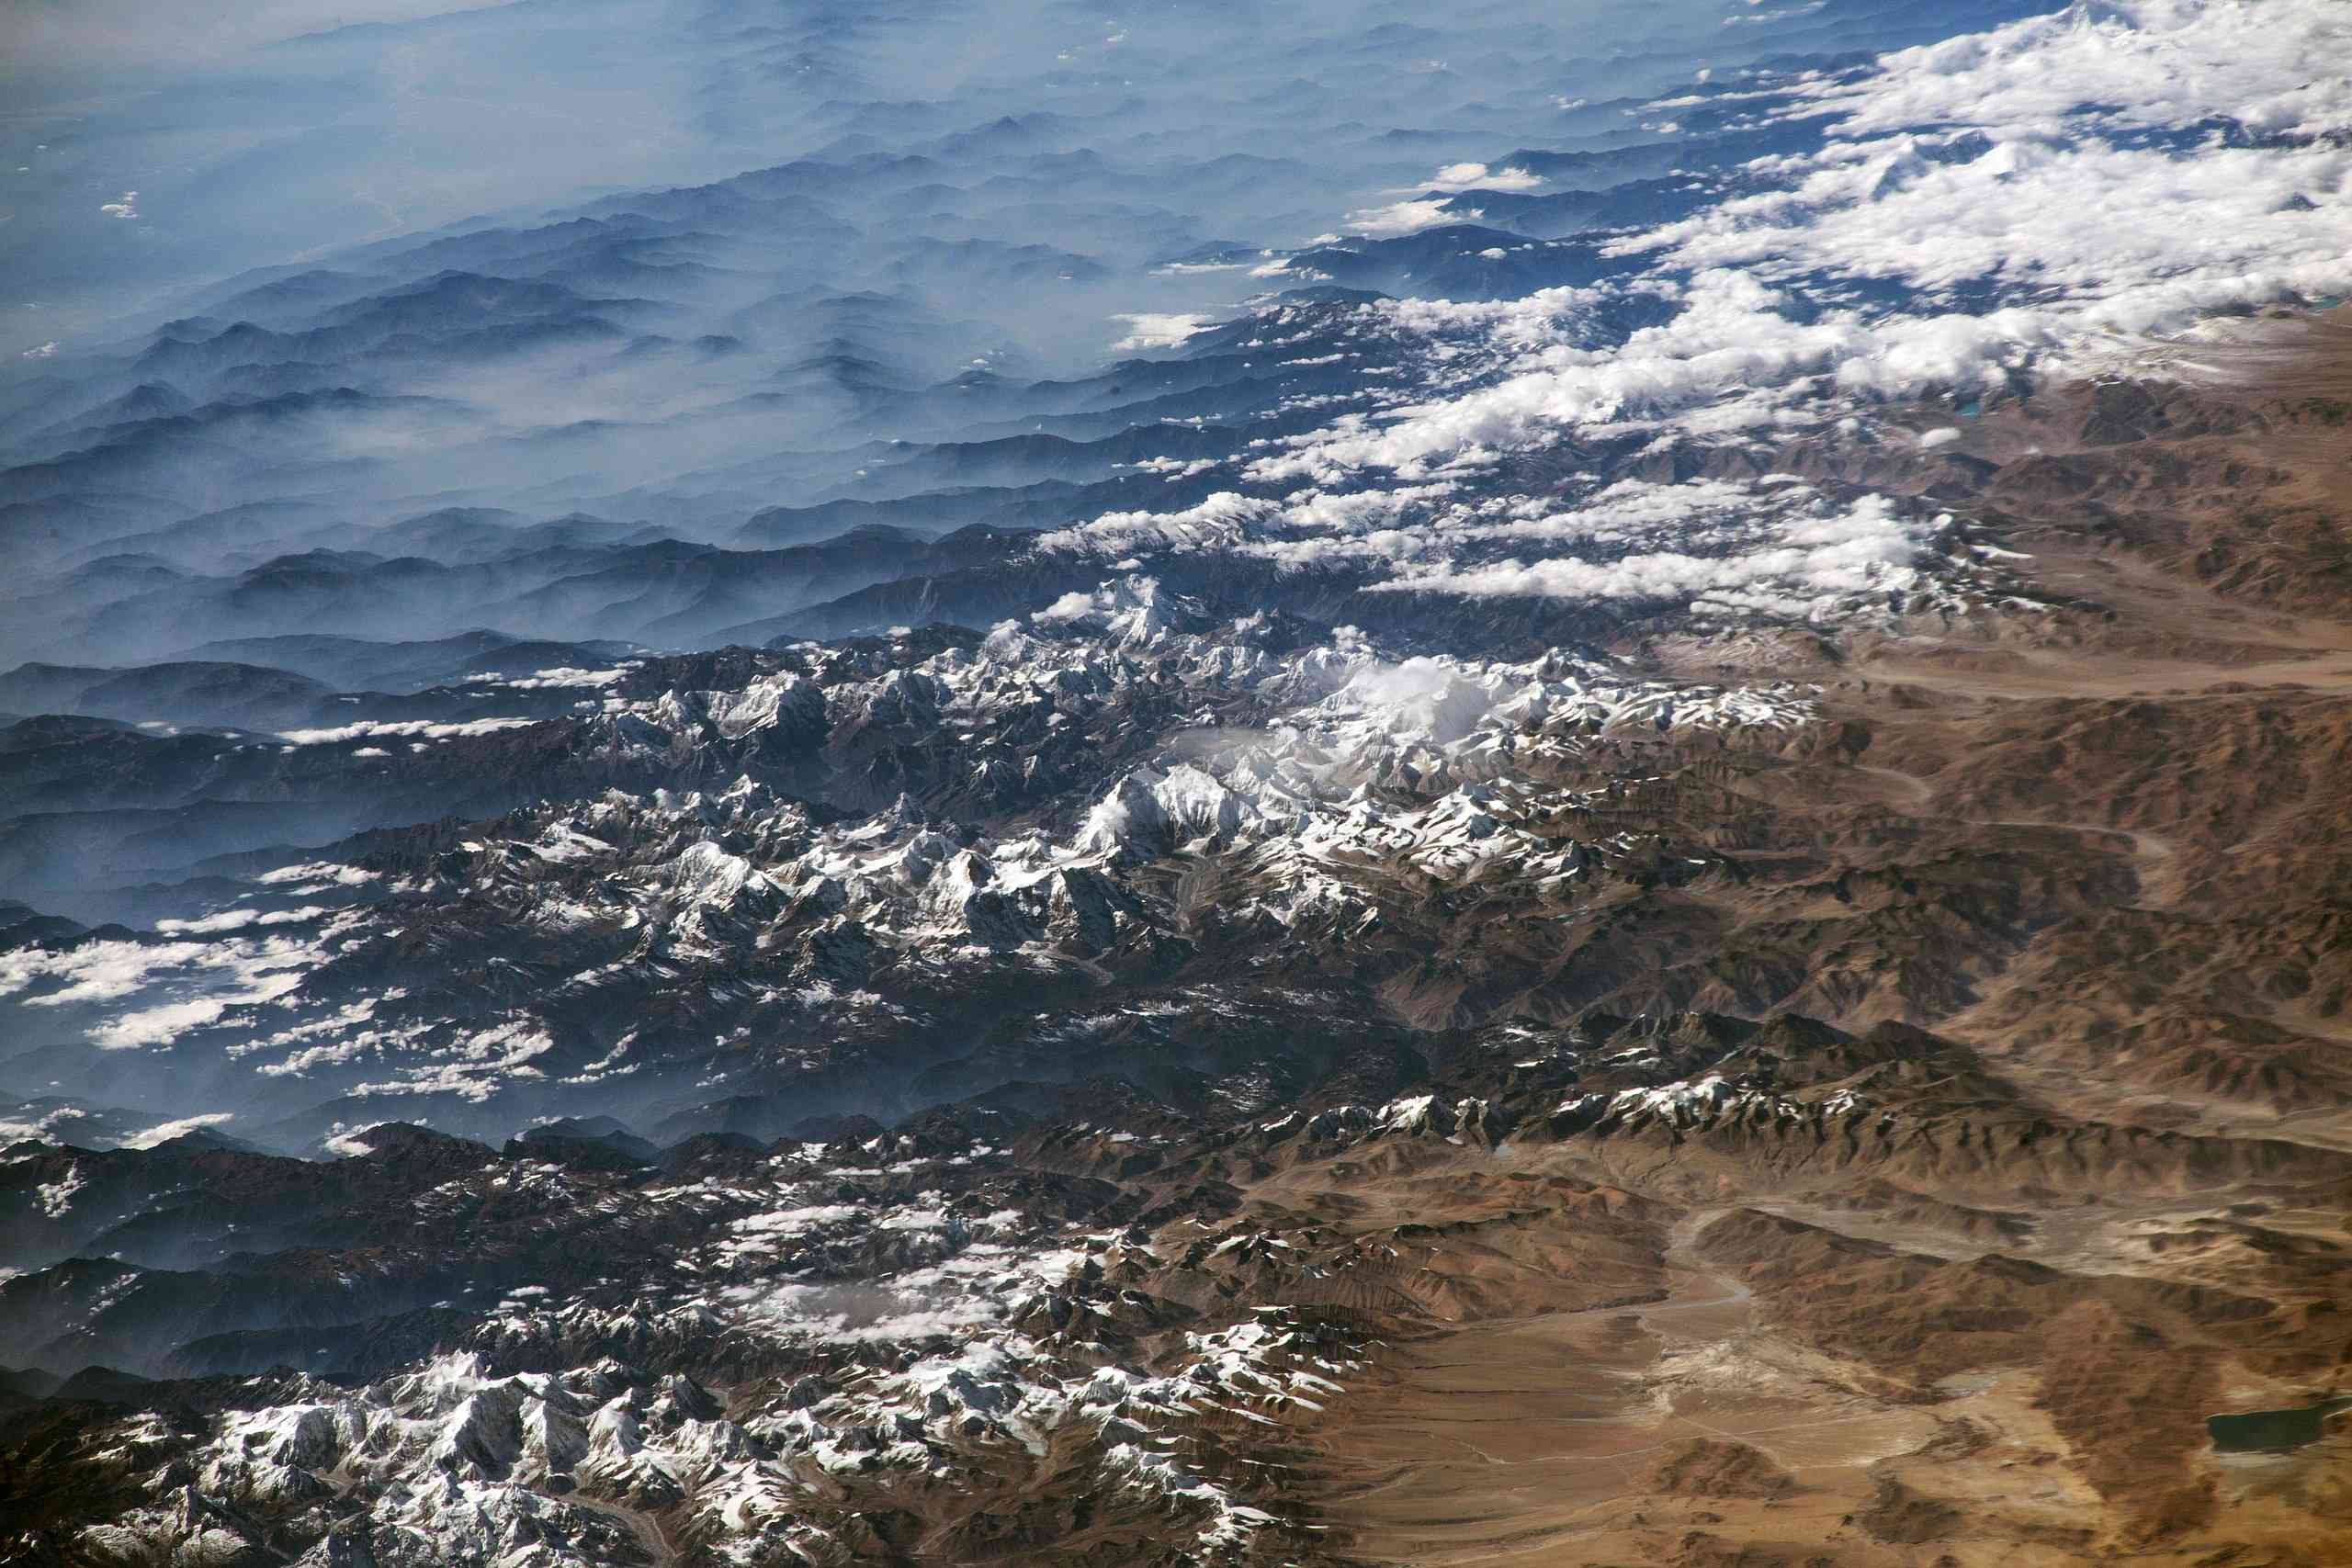 View of the Himalayas from the NASA ISS Expedition 53